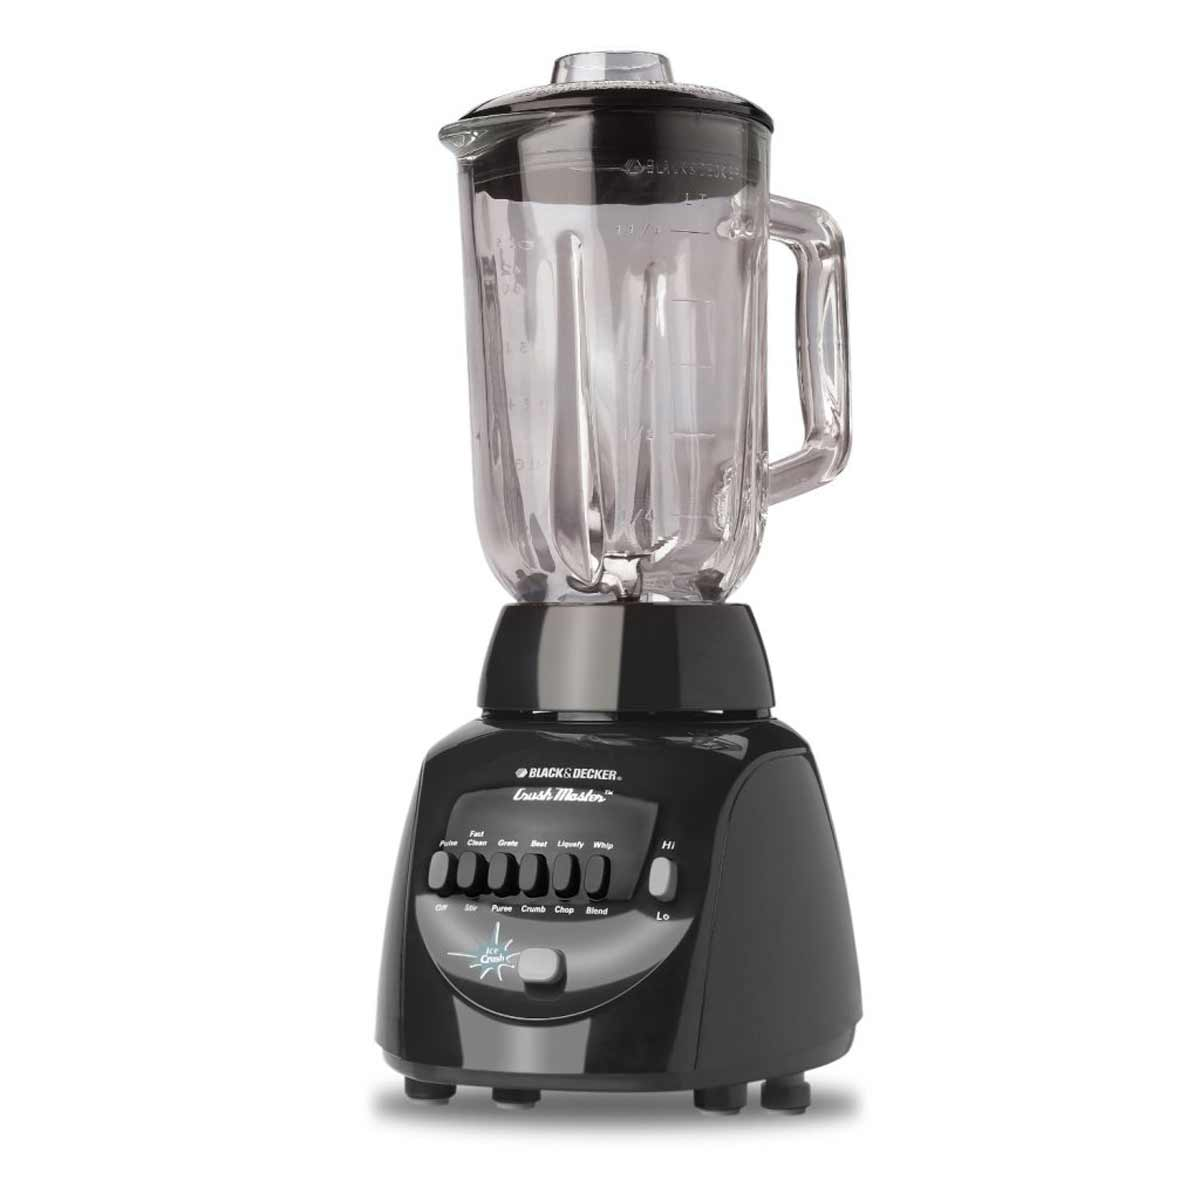 Crush Master BL10450HB Ice Blender from Black & Decker